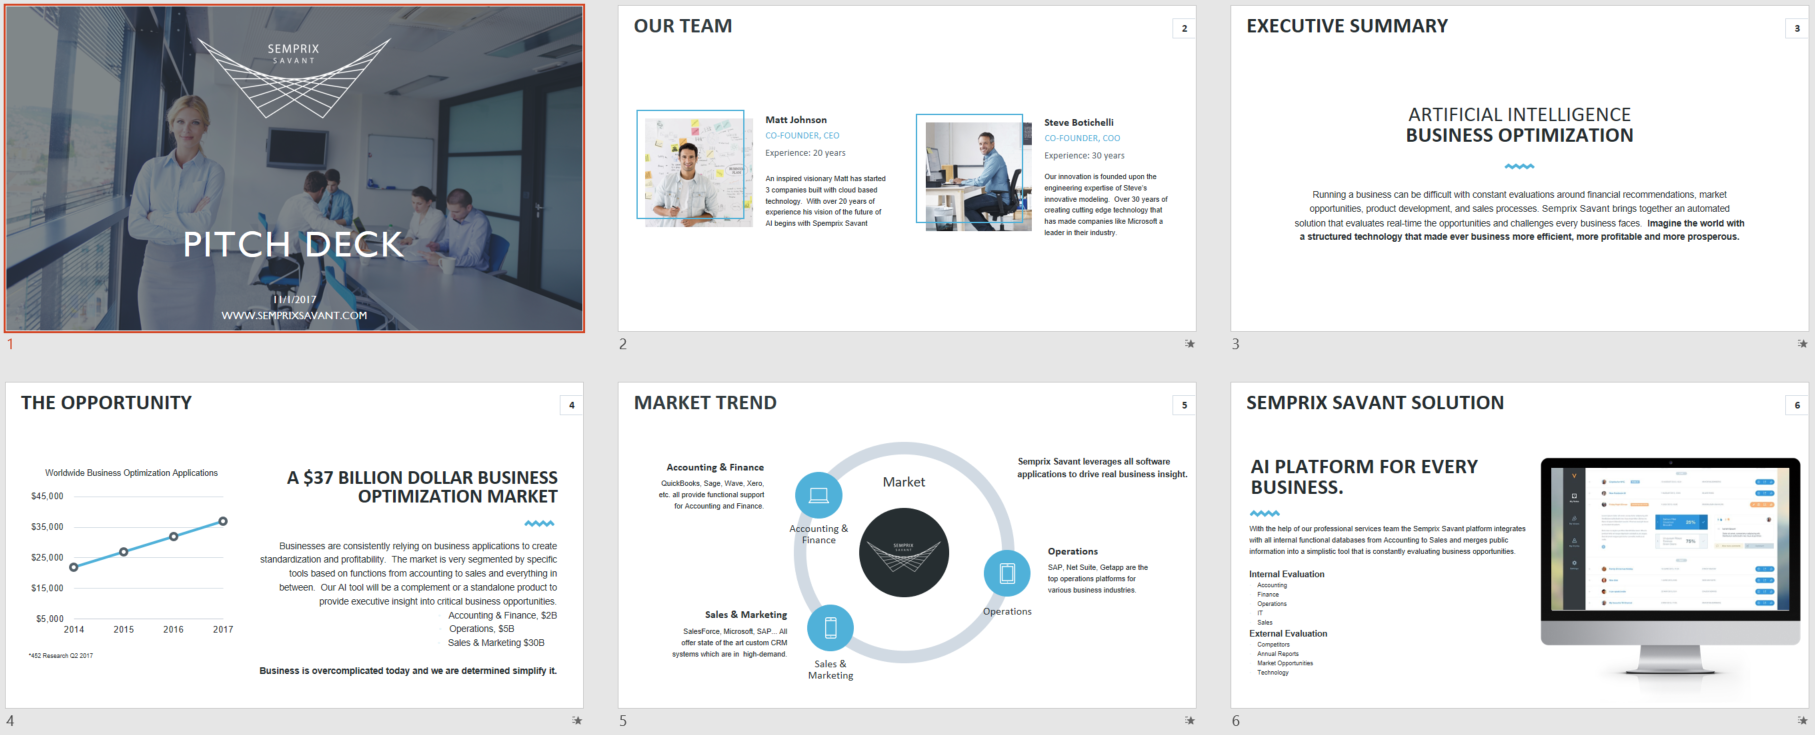 Pitch Deck Template Images Template Design Ideas - Sequoia capital pitch deck template